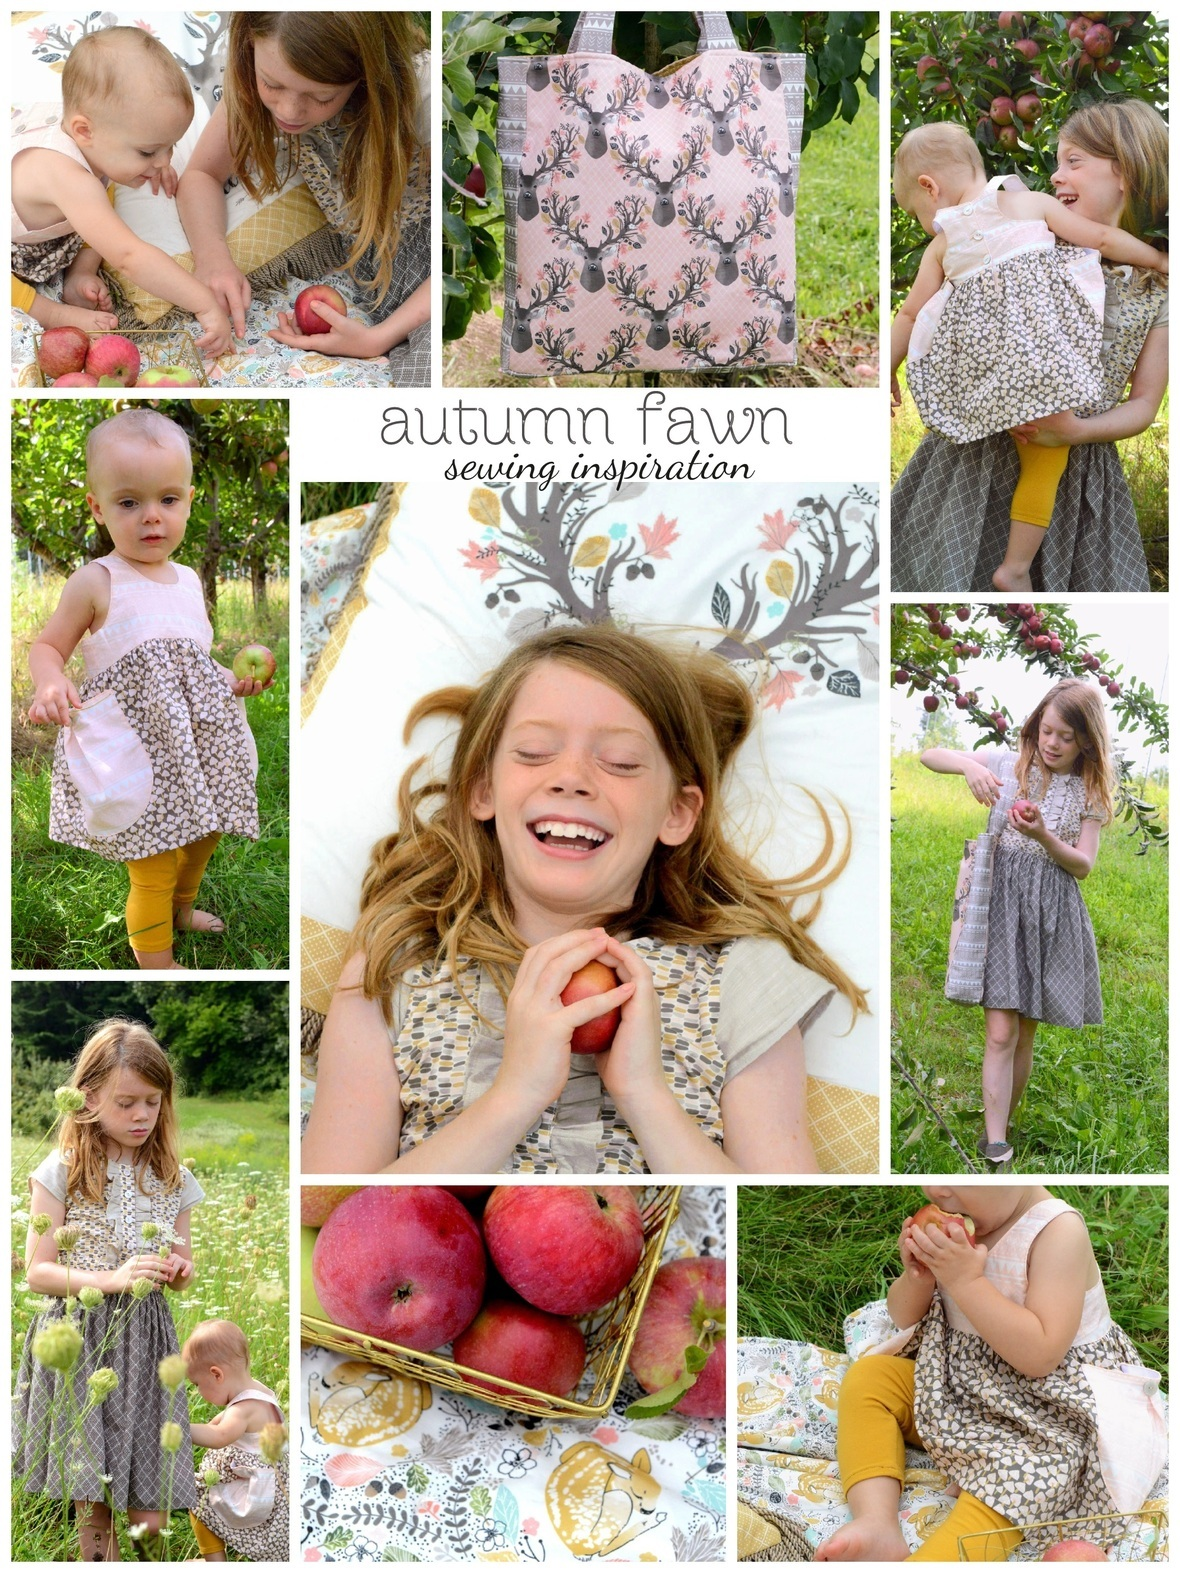 Autumn Fawn Sewing Inspiration - Copy